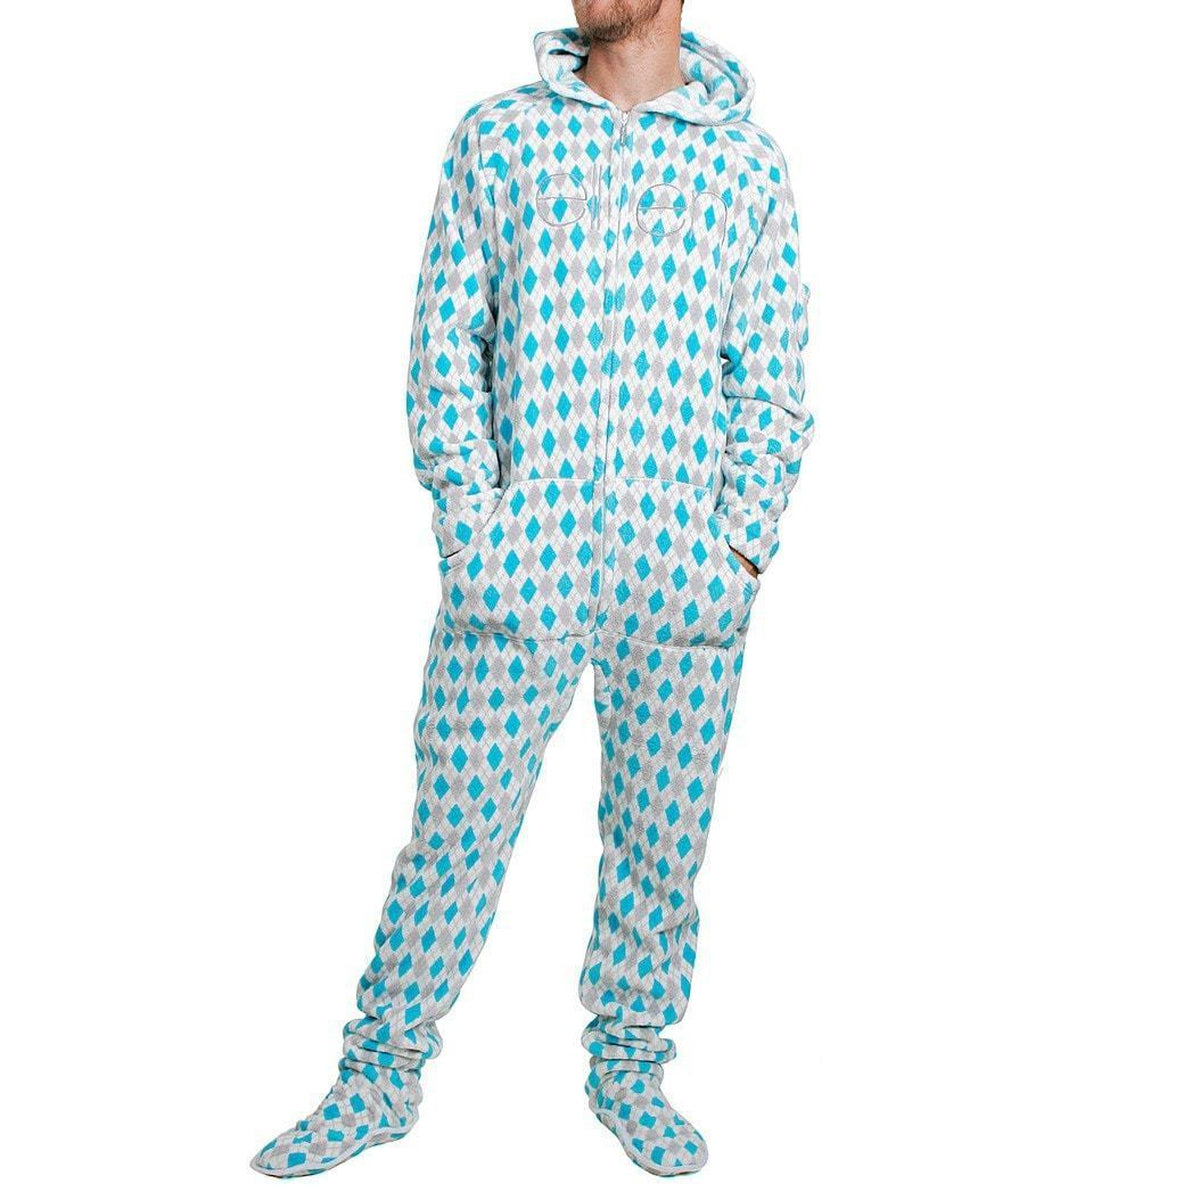 Argyle Adult One-Piece Pajama / Male - Ellen Degeneres Show Shop - 1